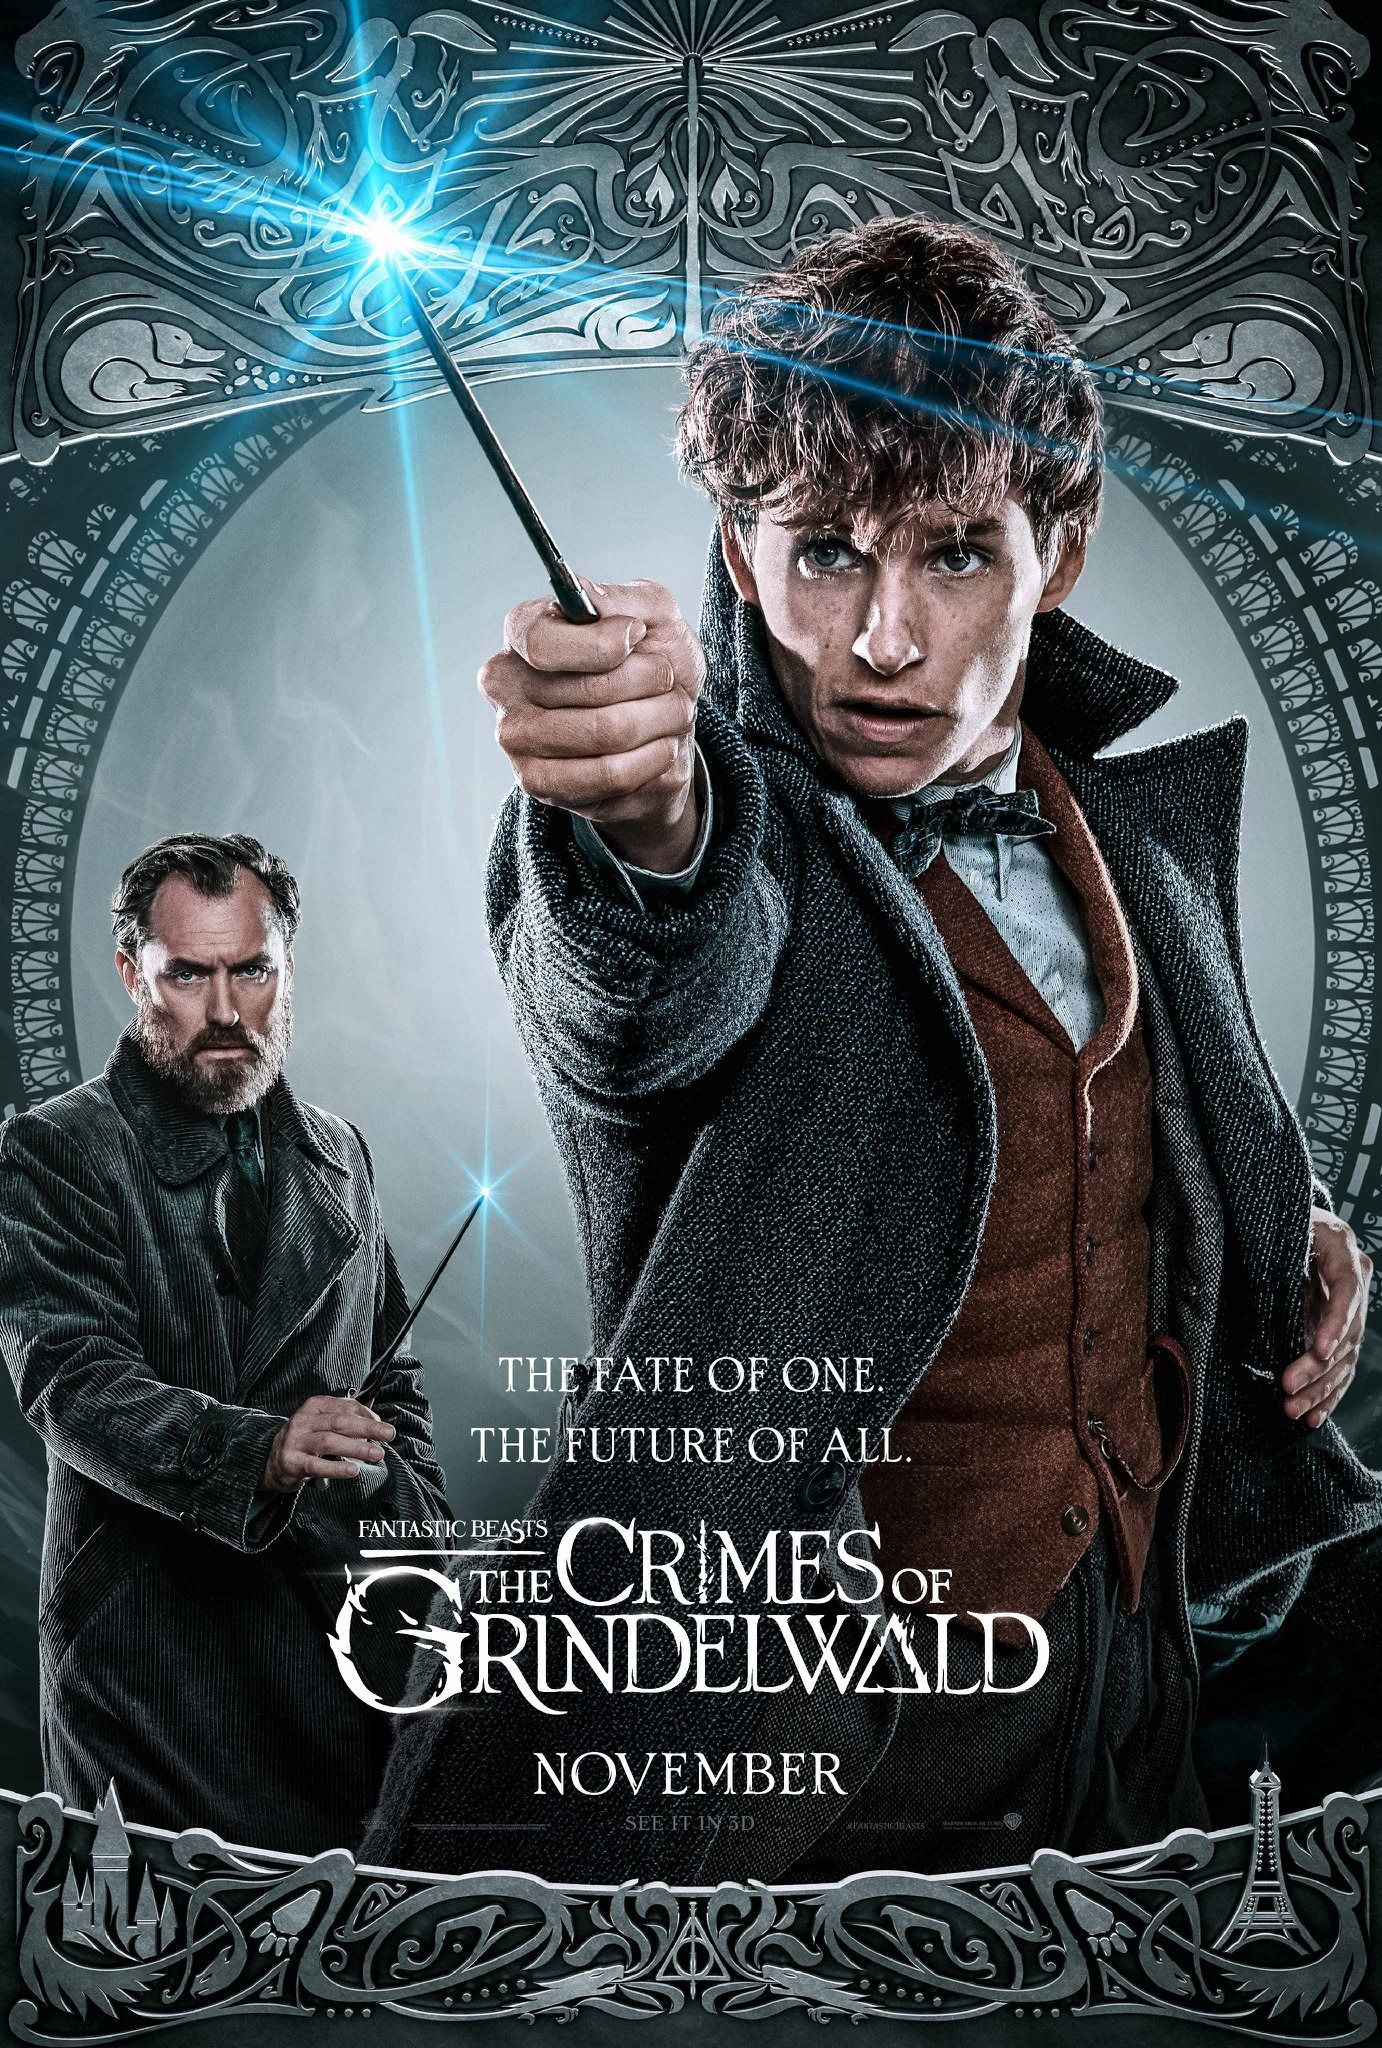 Fantastic Beasts: The Crimes of Grindelwald (2018) (2160p BluRay